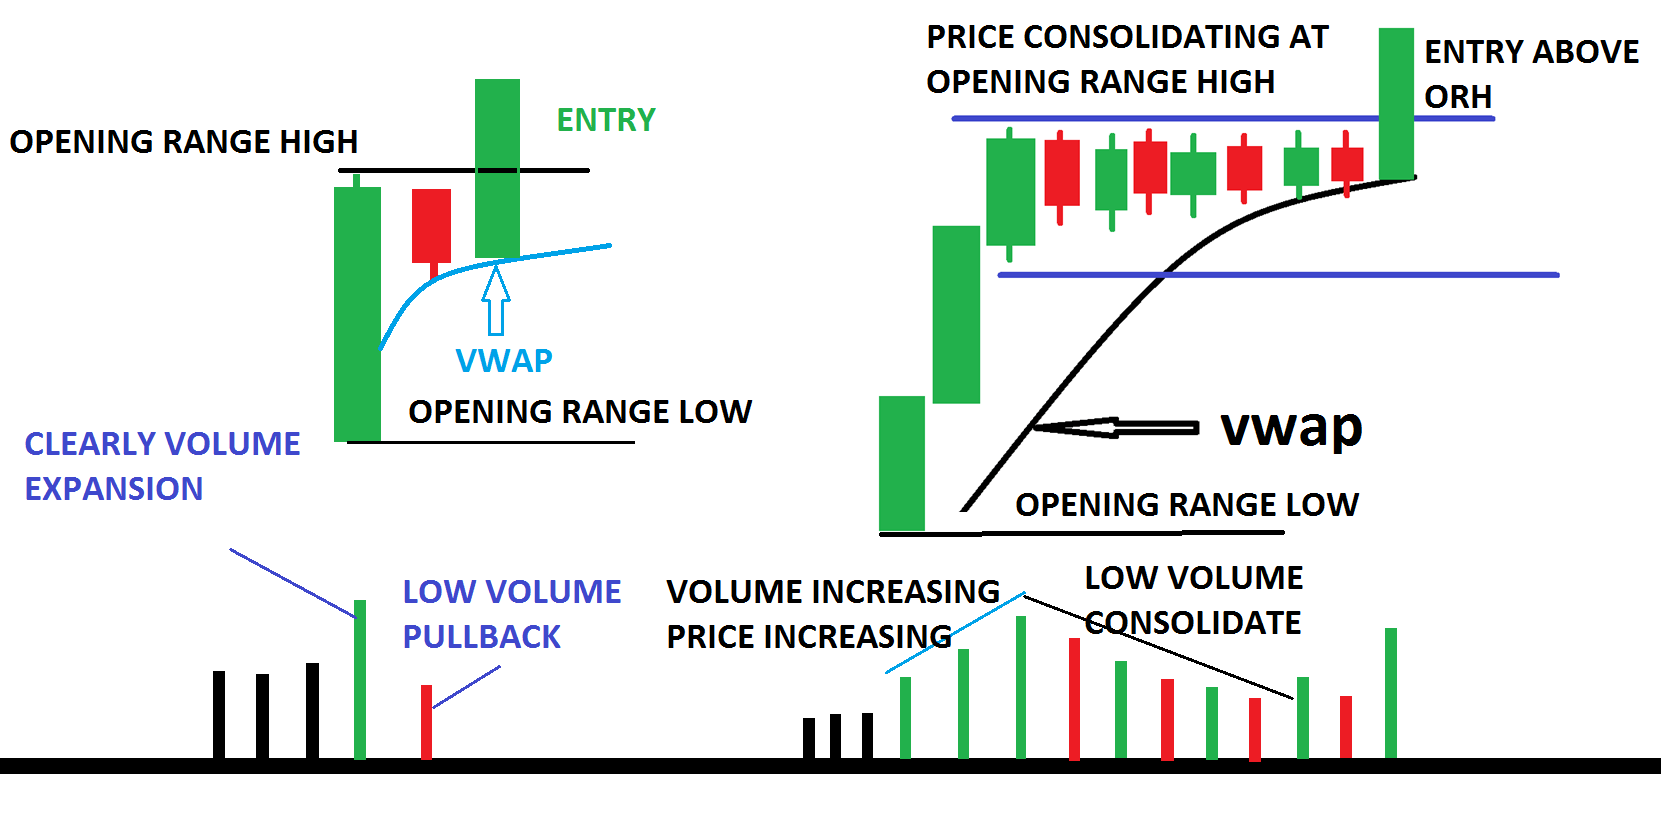 Rules for opening range breakout